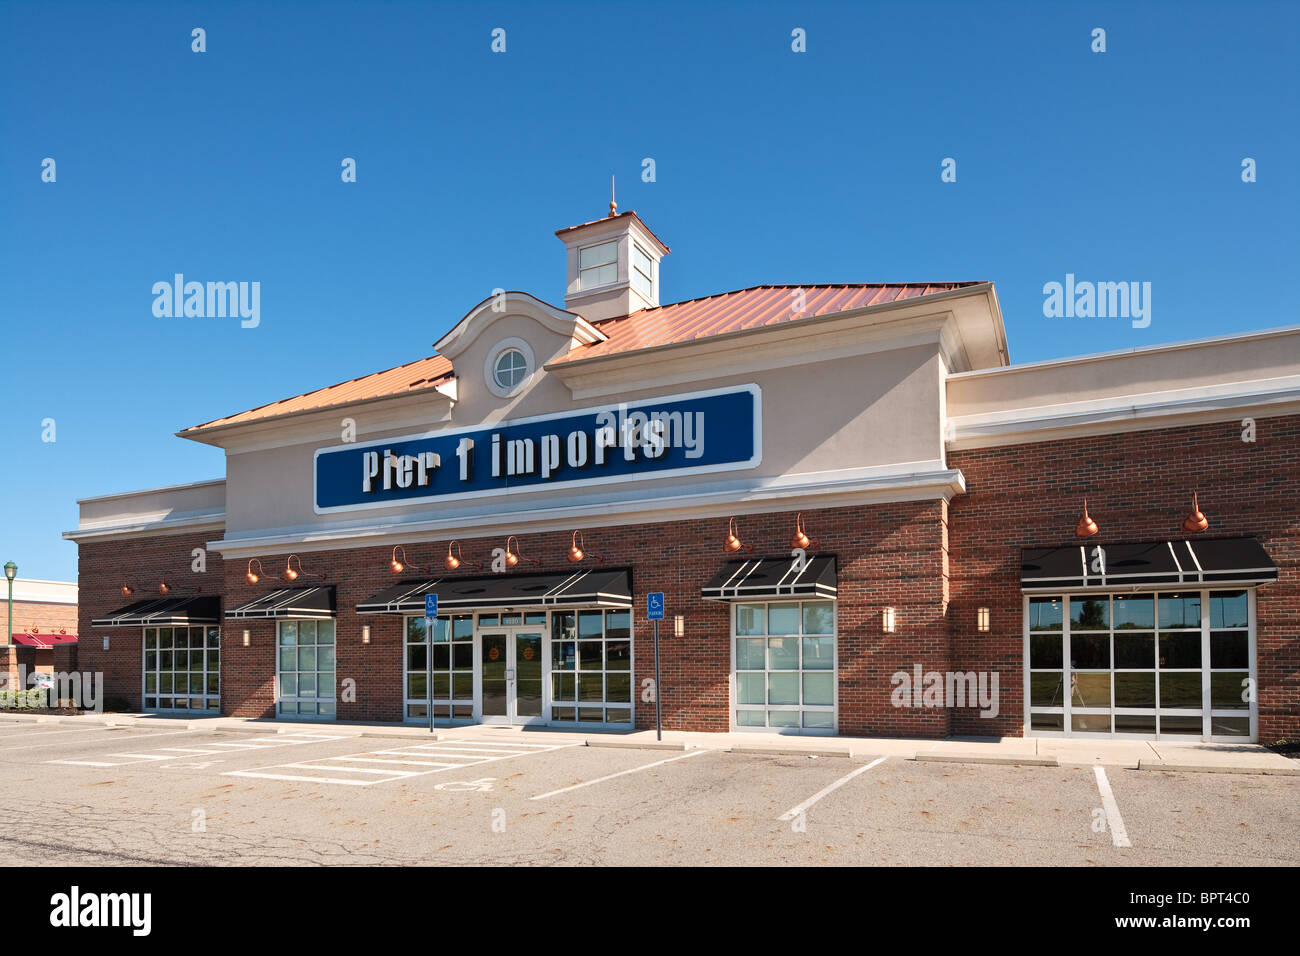 Pier 1 Imports at Polaris Fashion Place in Columbus Ohio - Stock Image